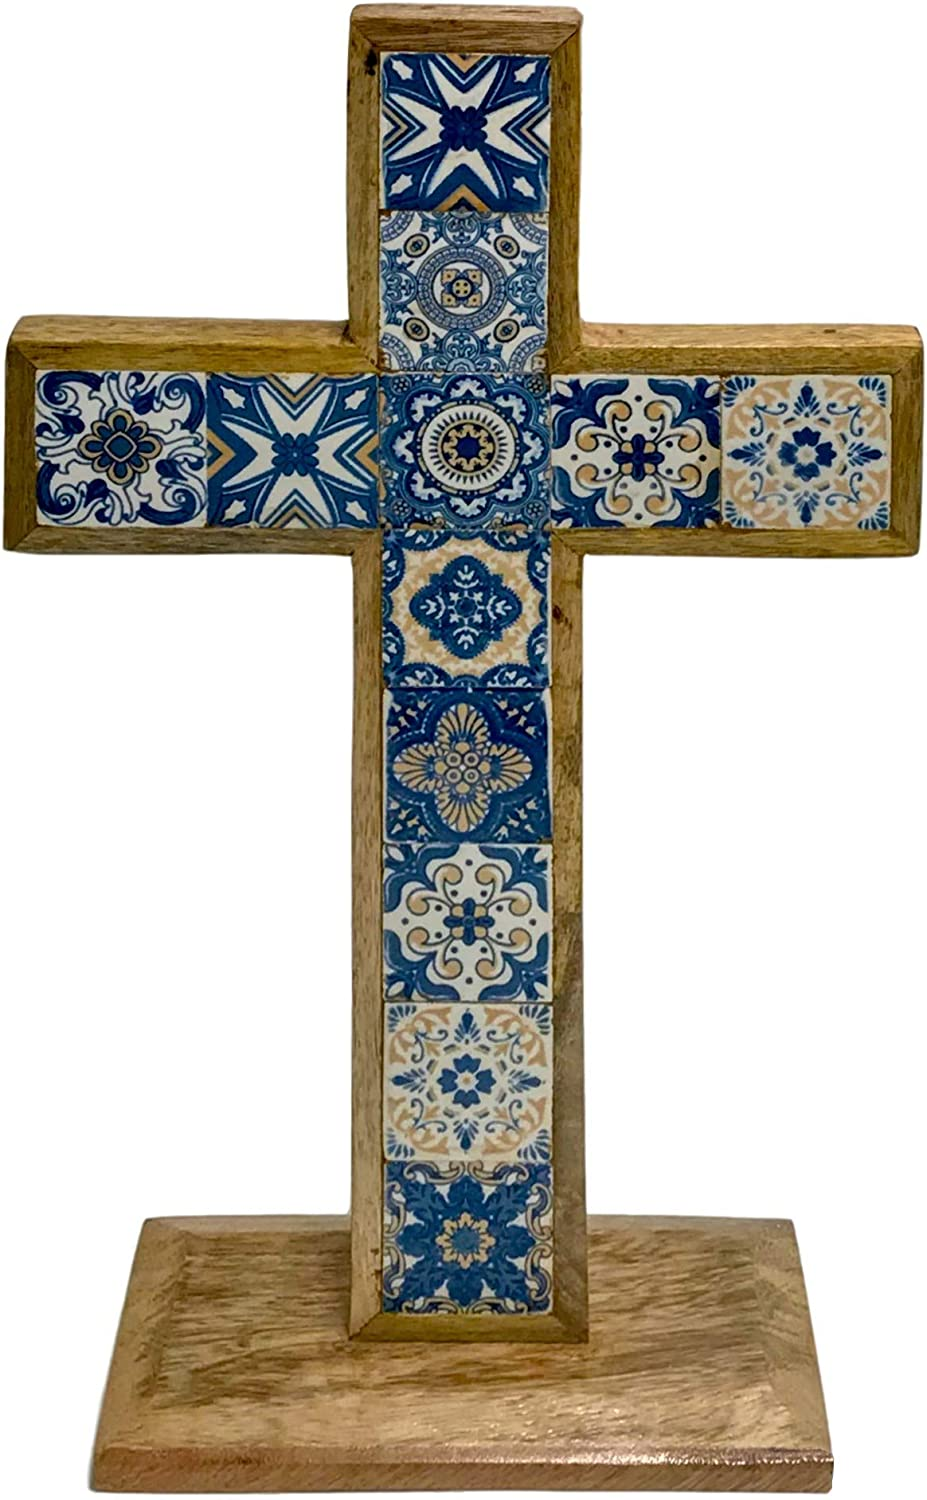 Table Cross Decor with Hand-Painted Inlaid Blue and White Ceramic Tile in Natural Mango Wood | Perfect for Christian Wall Art and Religious Table Decor (Table Cross)